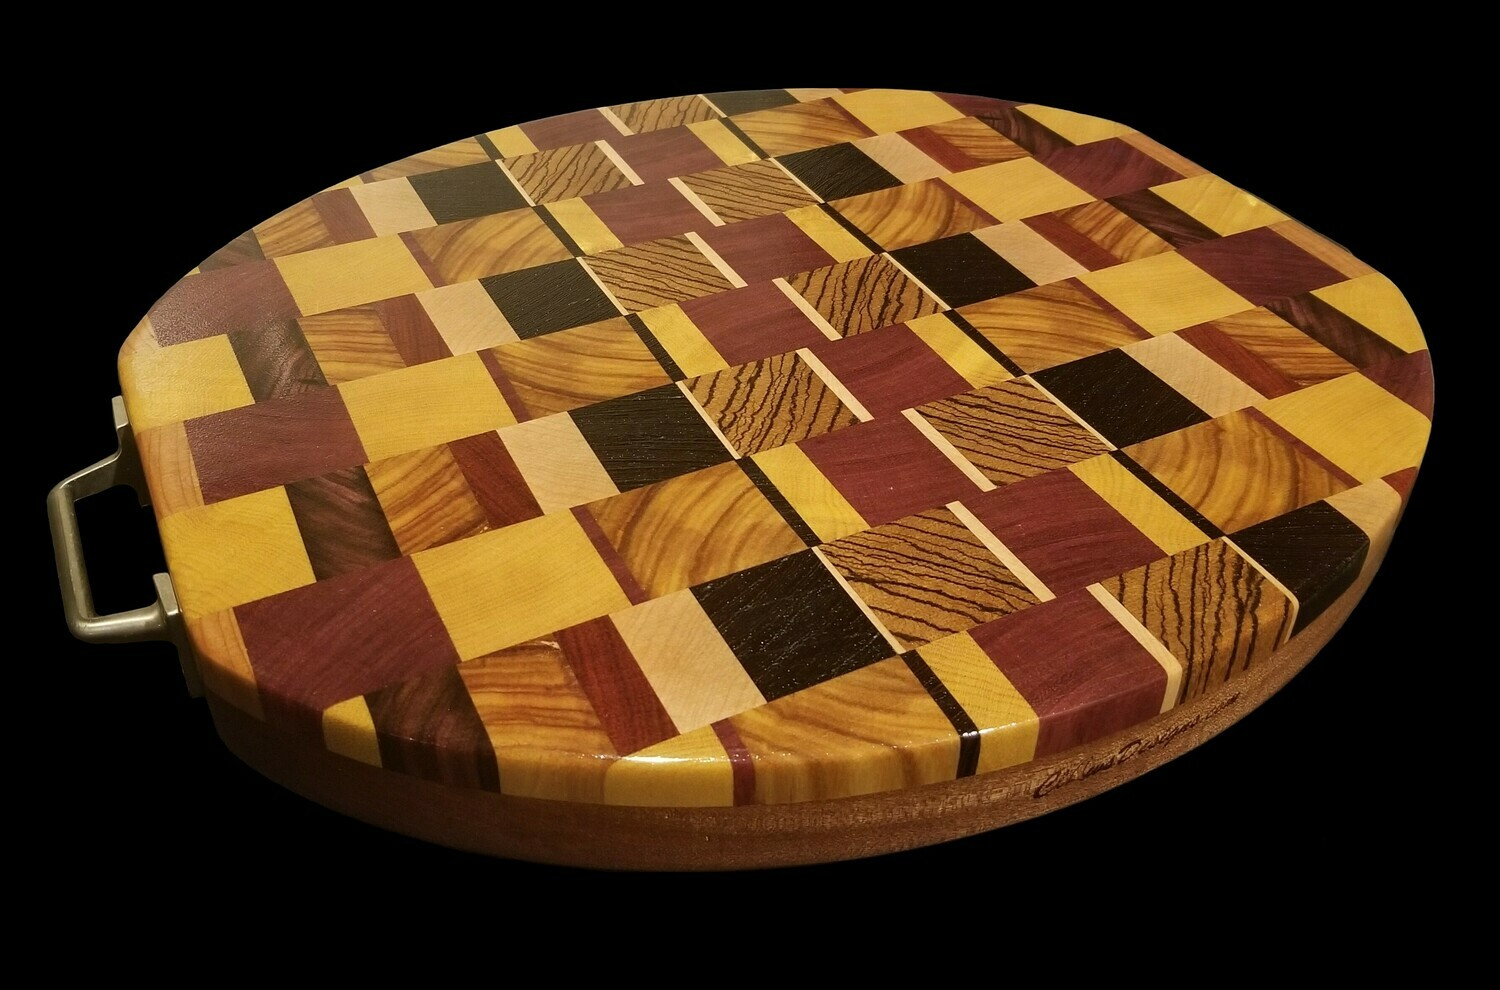 "Cutting Board, 2 Layer, End Grain, 15 1/4"" x 13 1/2"" x 1 1/2"" Thick"